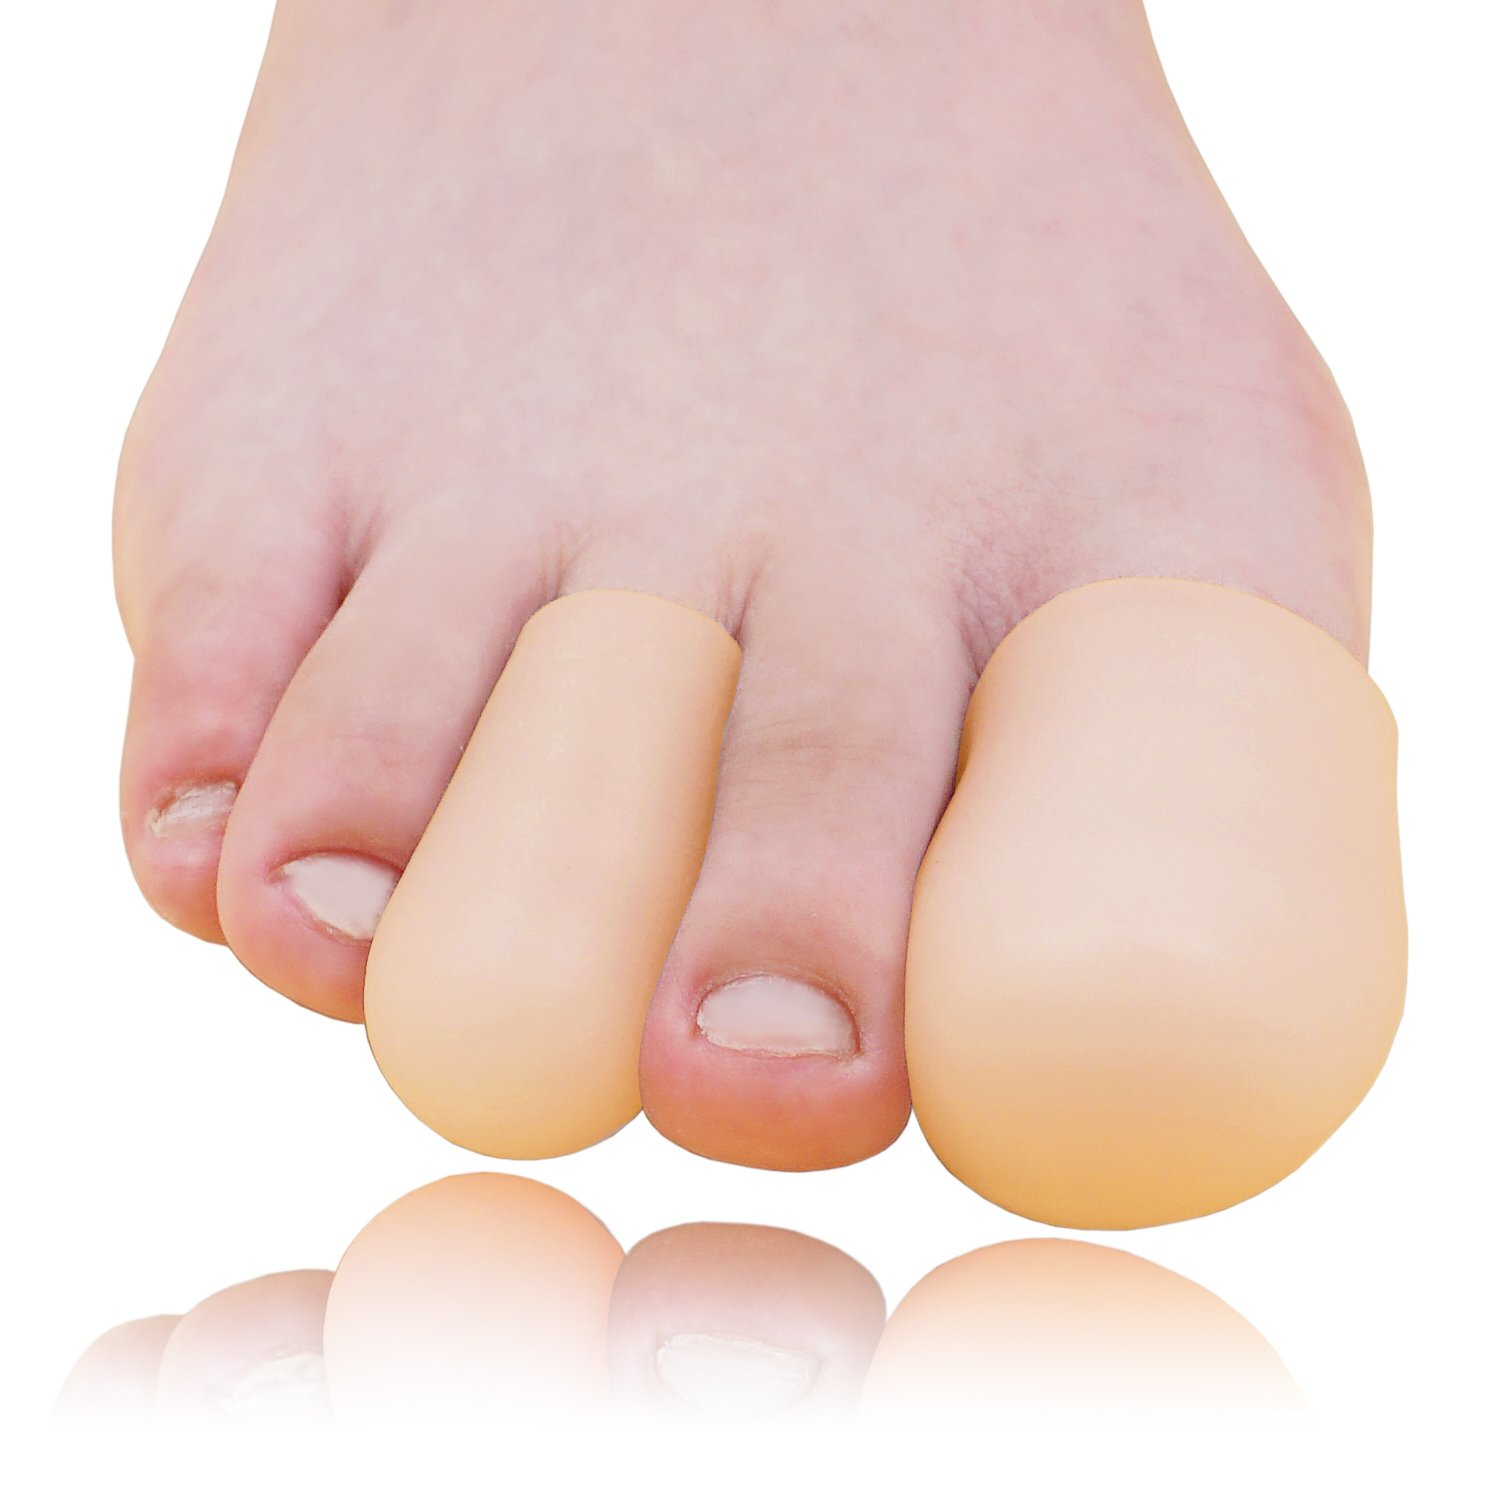 Dr. Foot's Gel Toe Caps Prevents Callus Relieve Pain from Corns, Blisters, Hammer Toes Bunion Pain Relief - 4 Pairs (Beige)